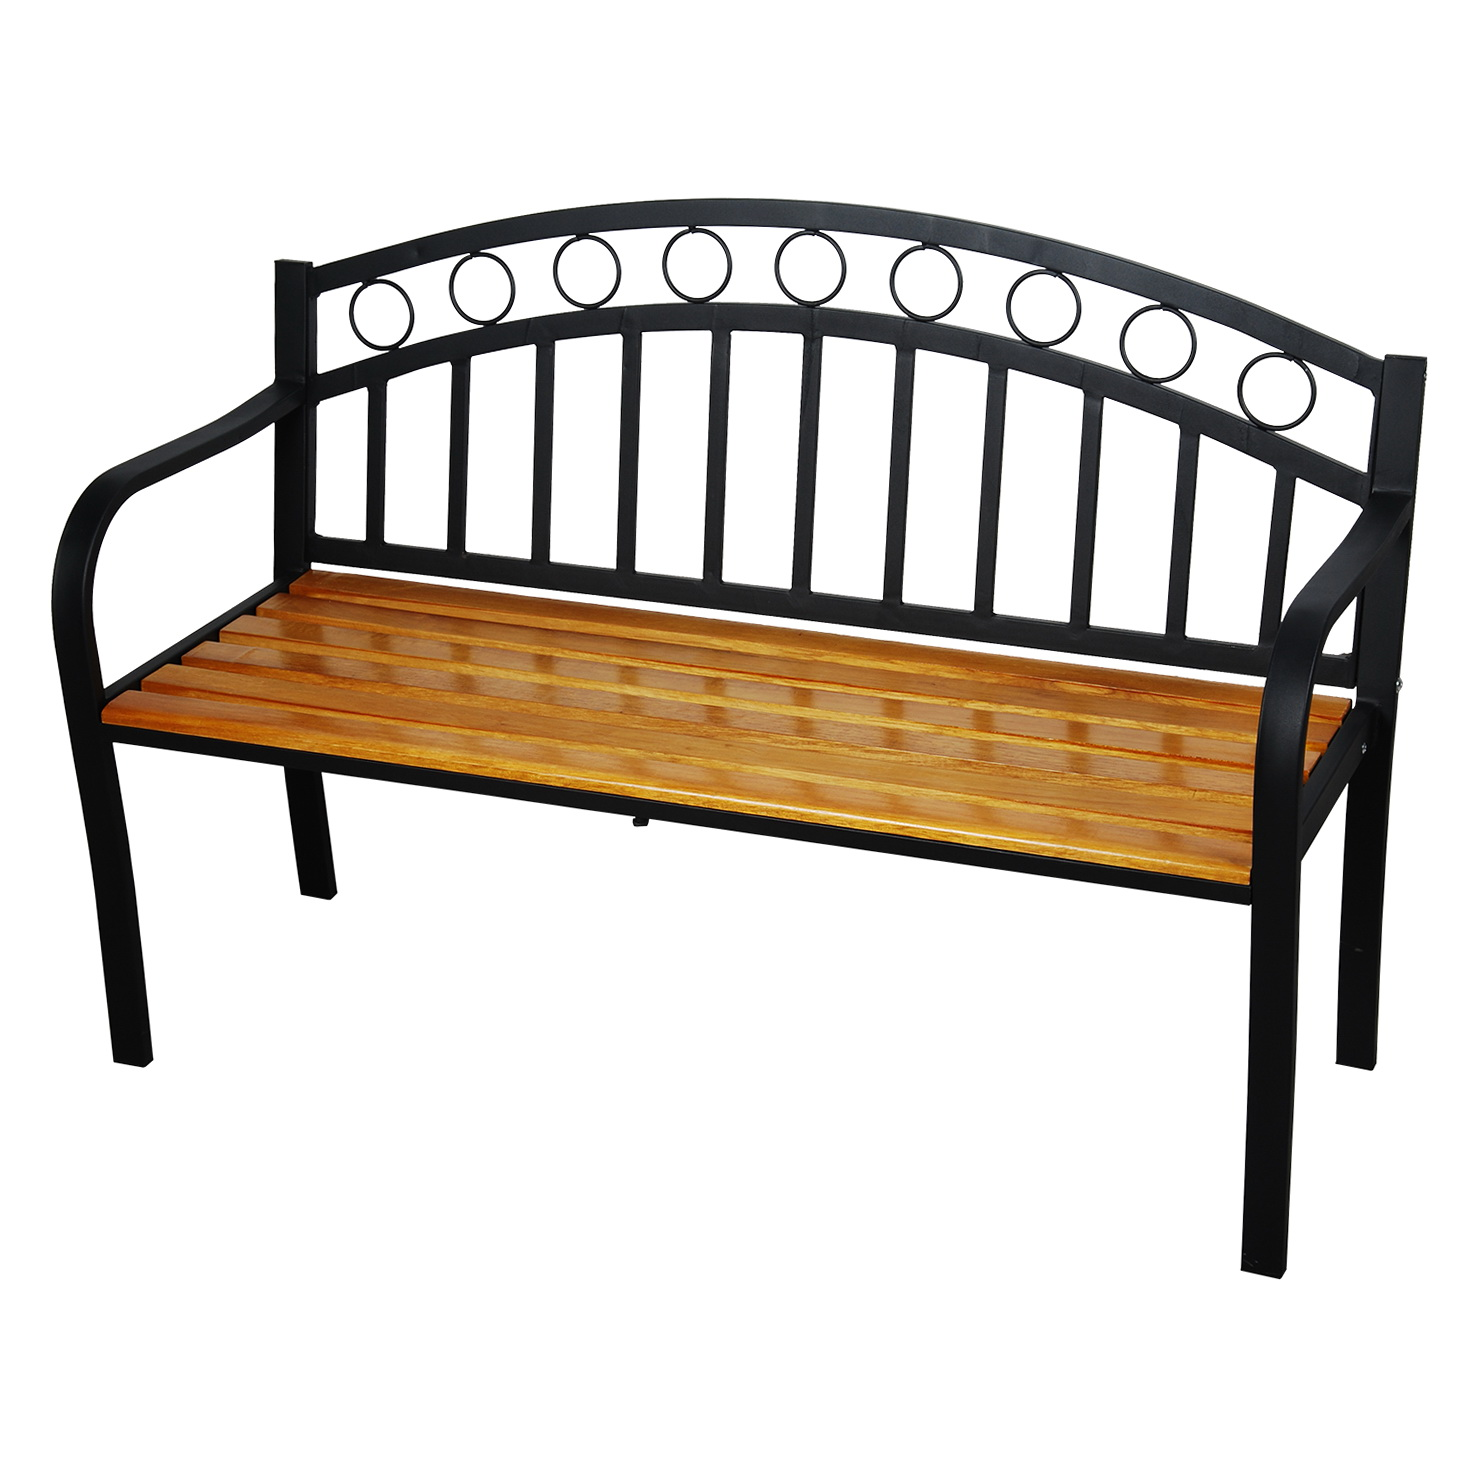 Wooden Garden Benches Ebay Home Design Ideas